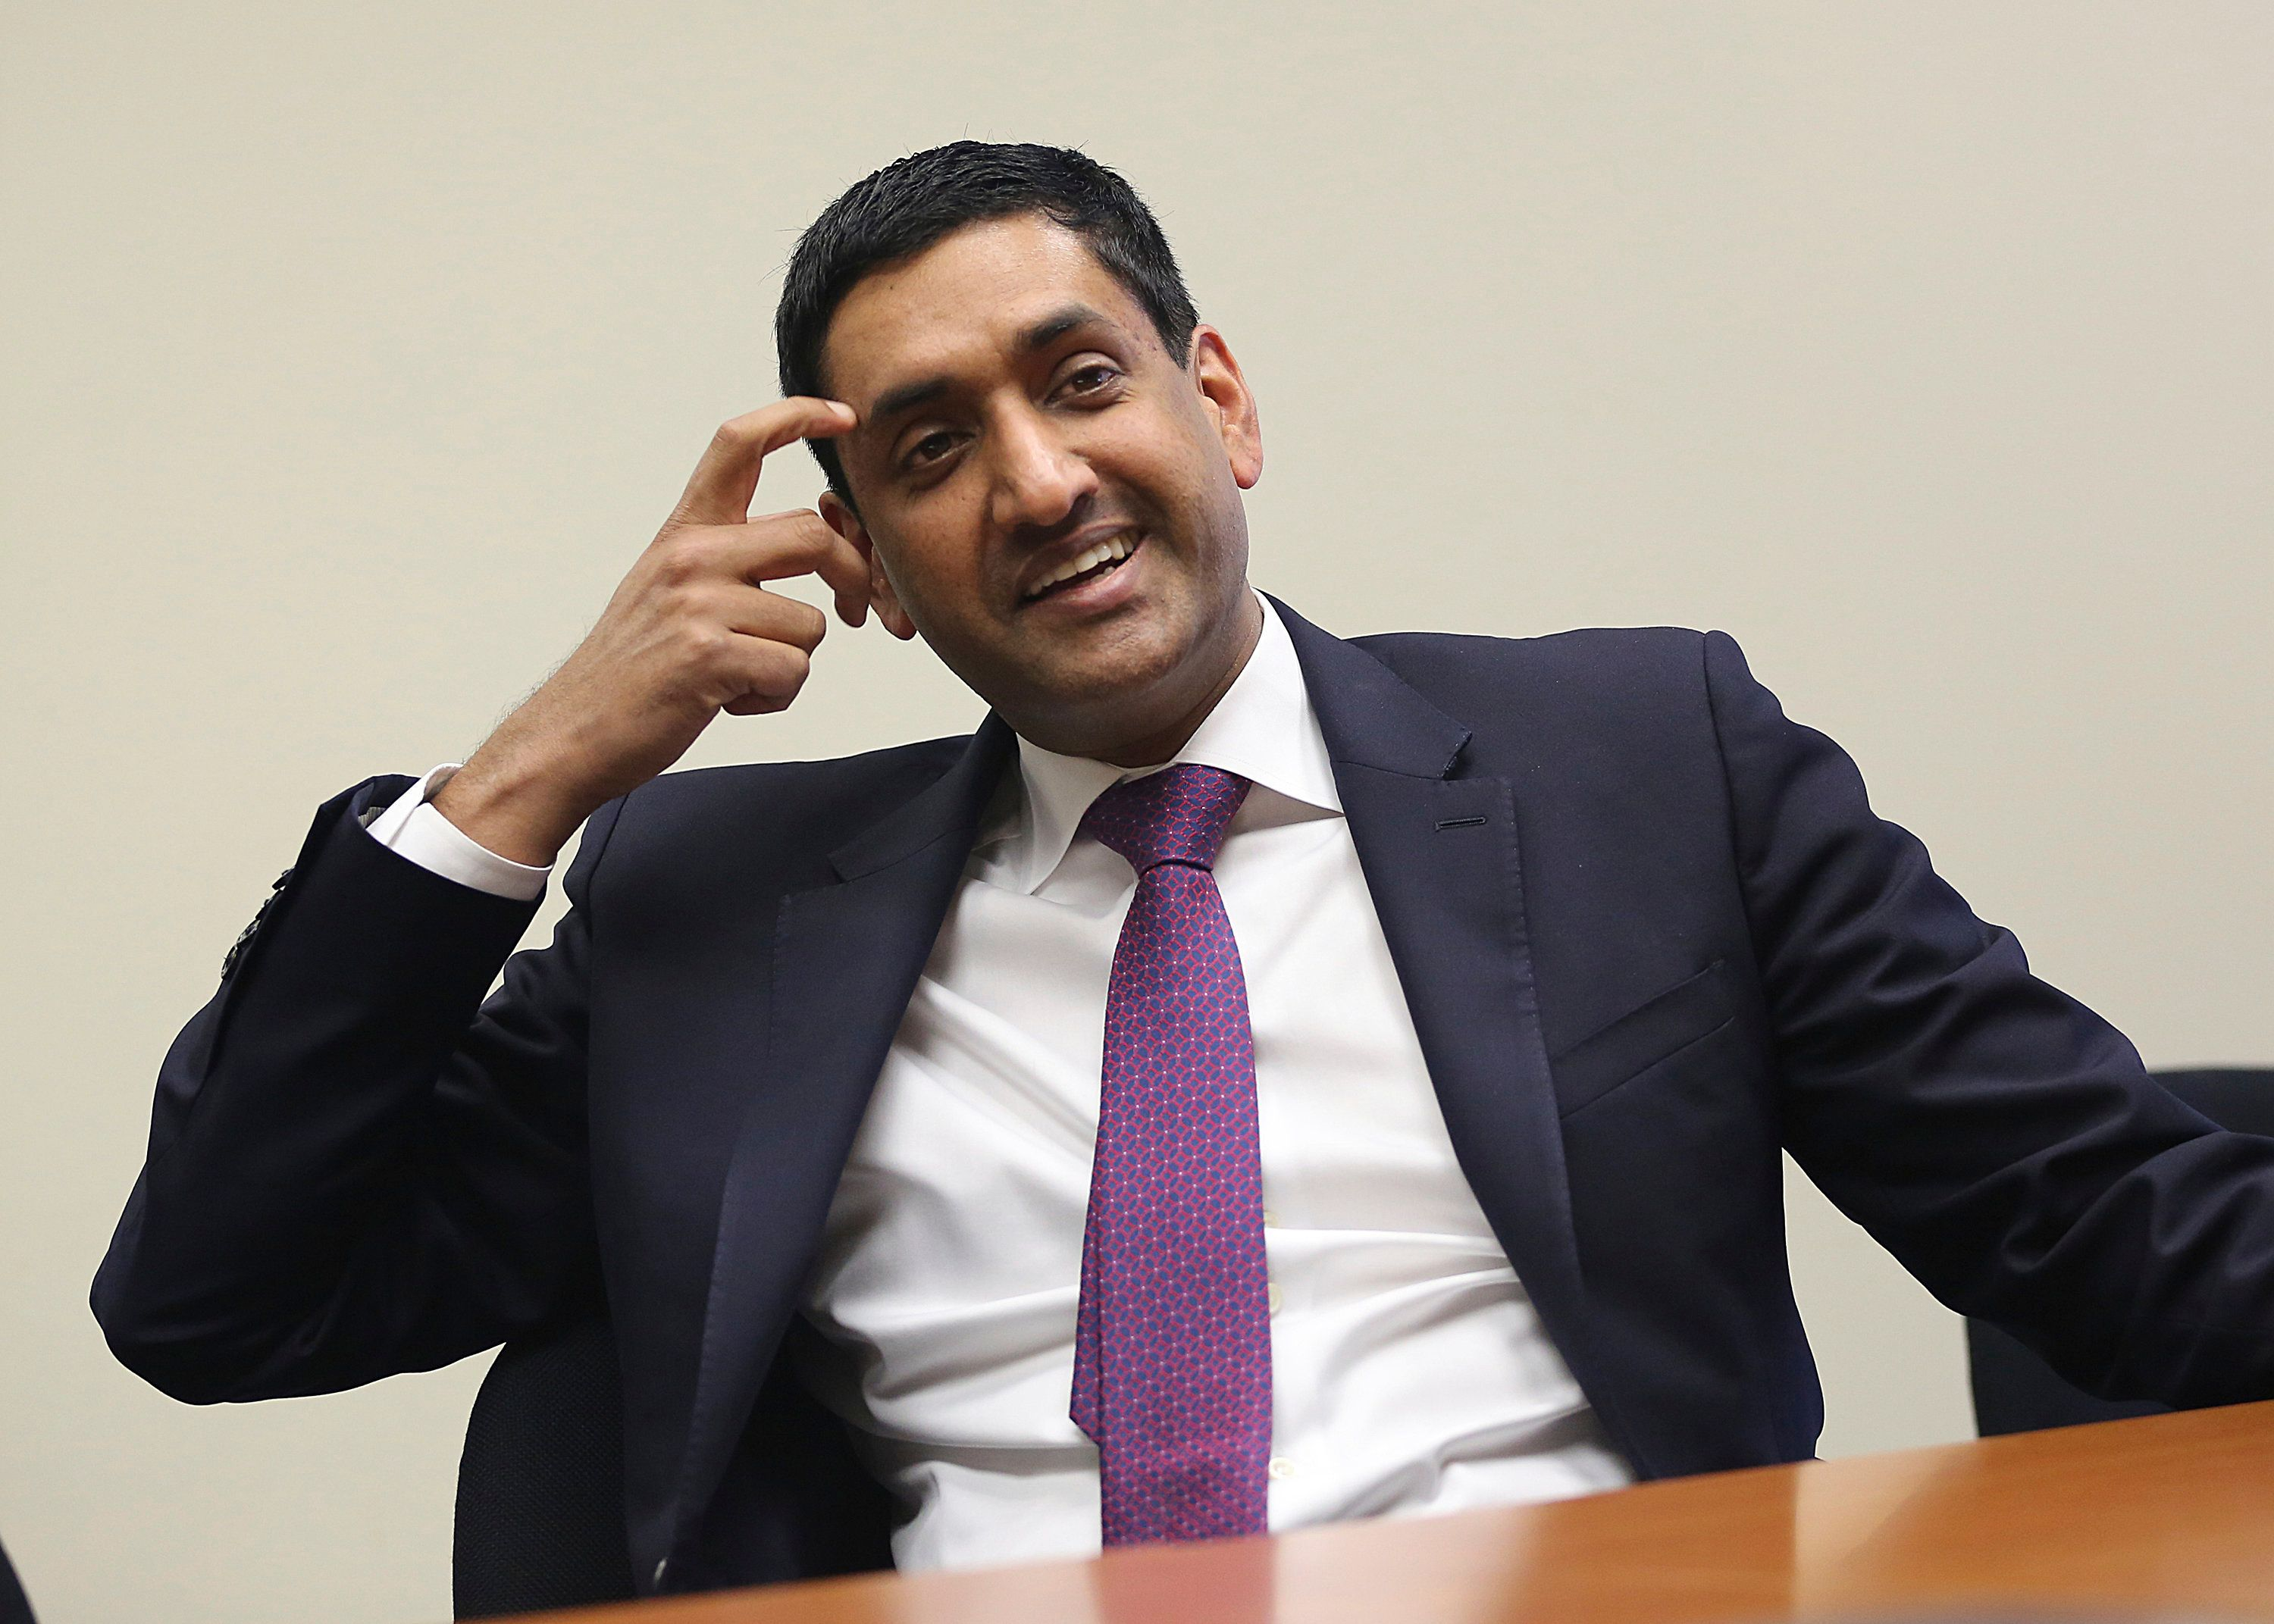 U.S. Rep. Rohit 'Ro' Khanna, from California's 17th Congressional District centered in Santa Clara and other parts of California's Silicon Valley, is interviewed in Los Angeles Friday, Jan. 26, 2018. (AP Photo/Reed Saxon)